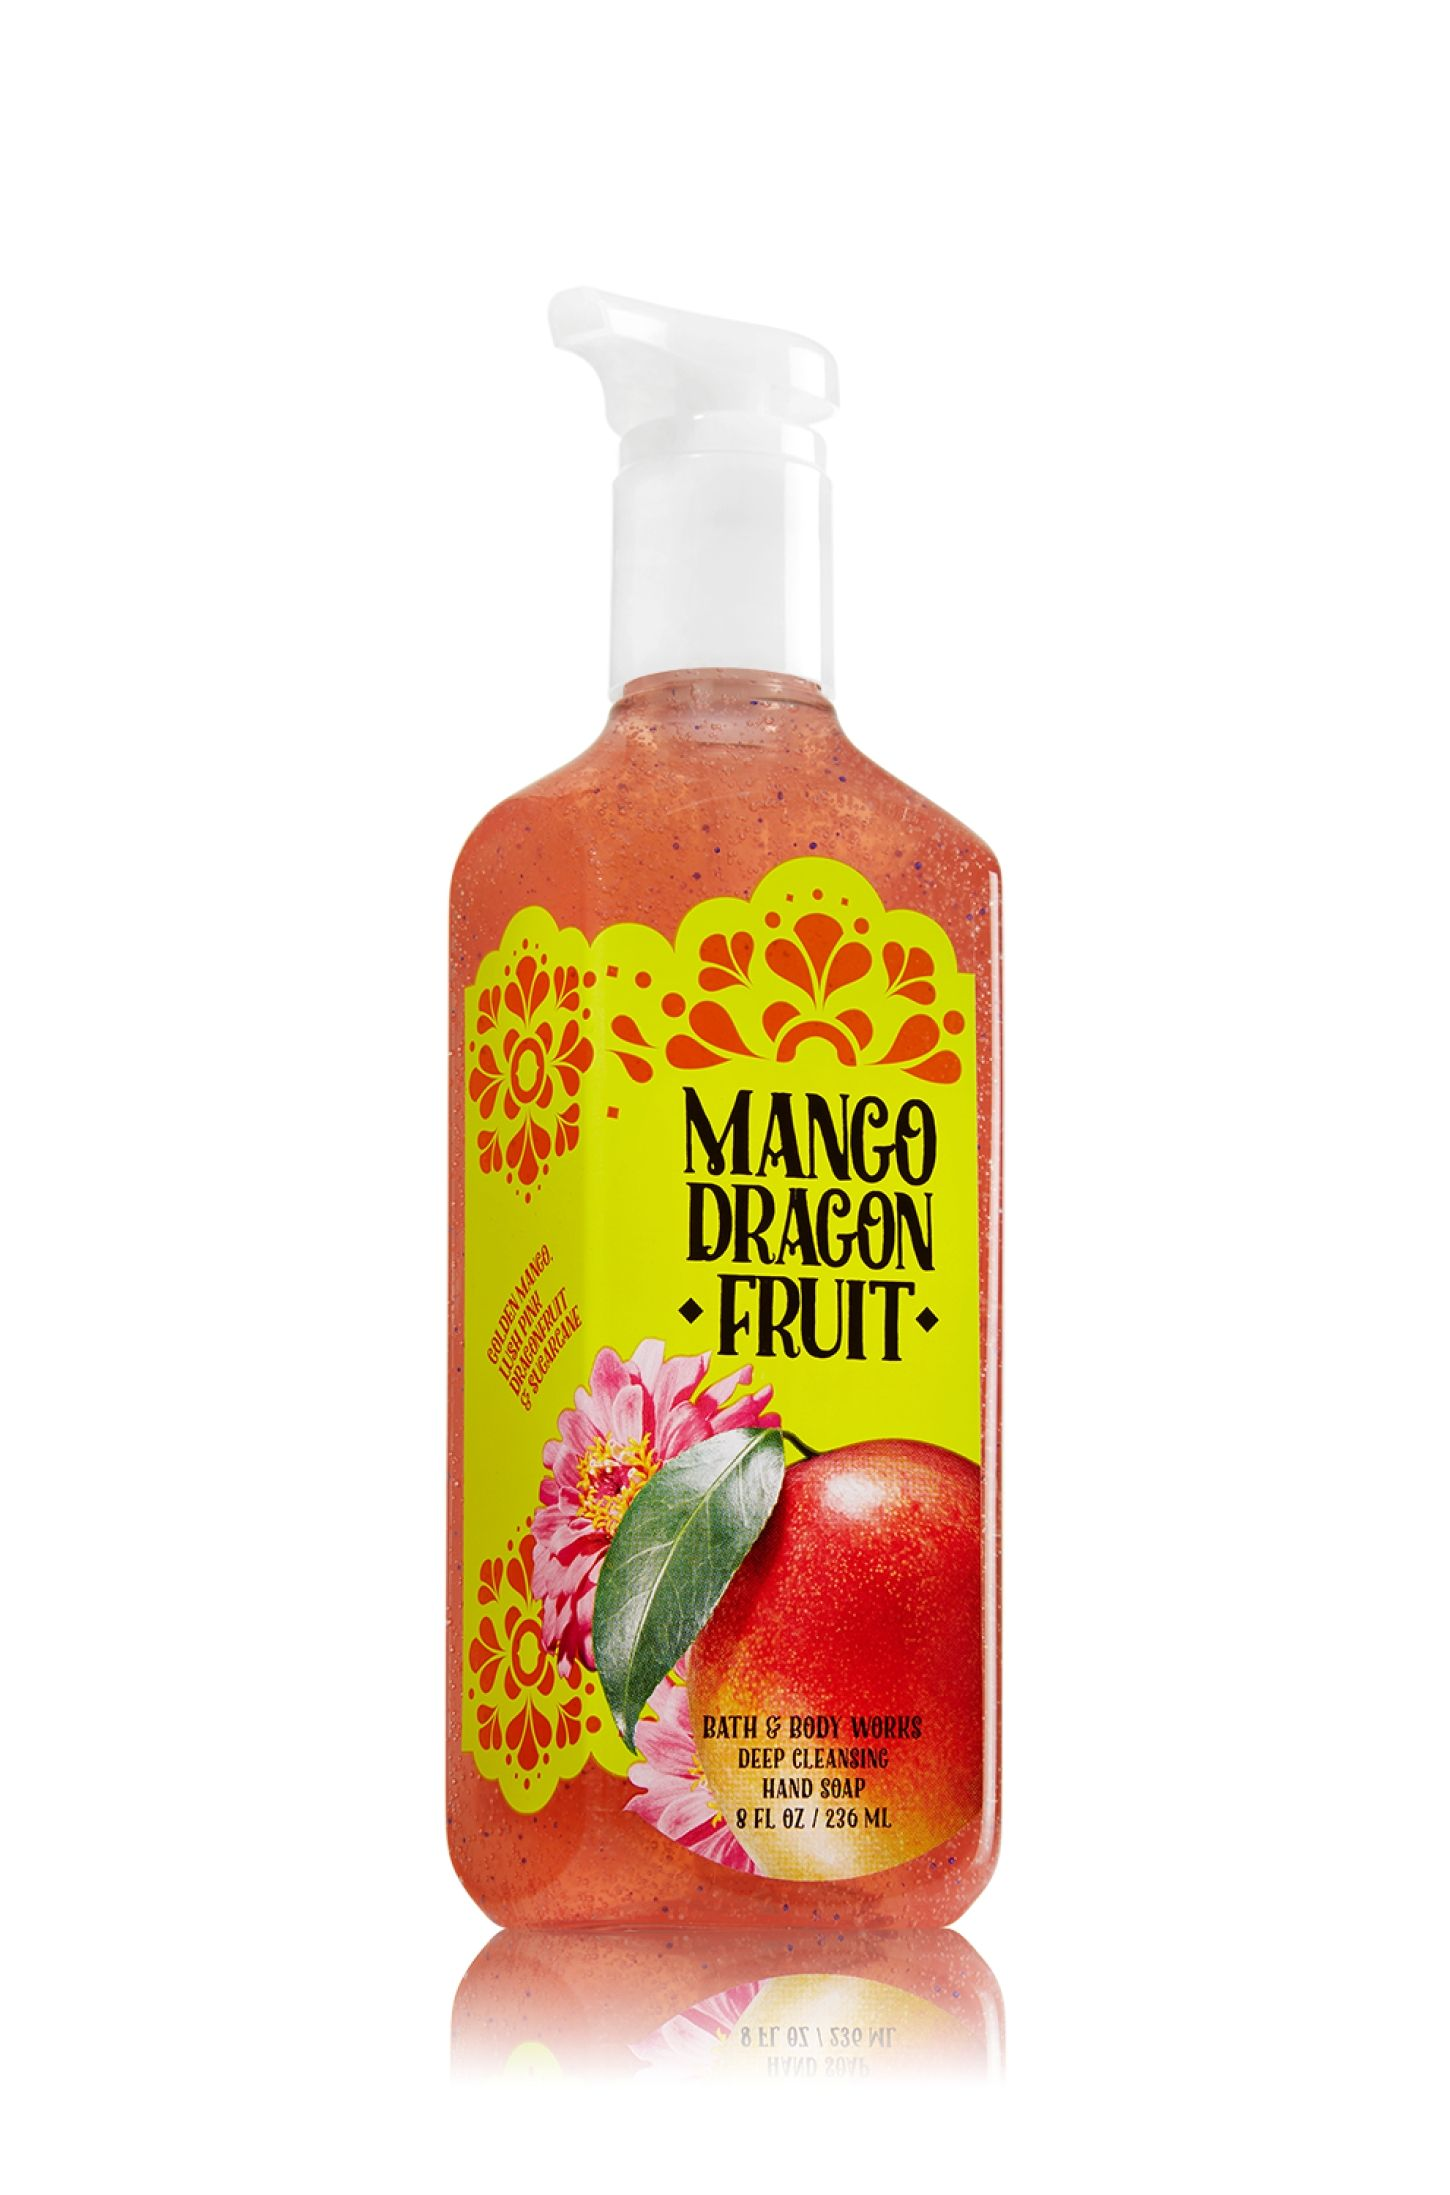 Mango Dragon Fruit Deep Cleansing Hand Soap Soap Sanitizer